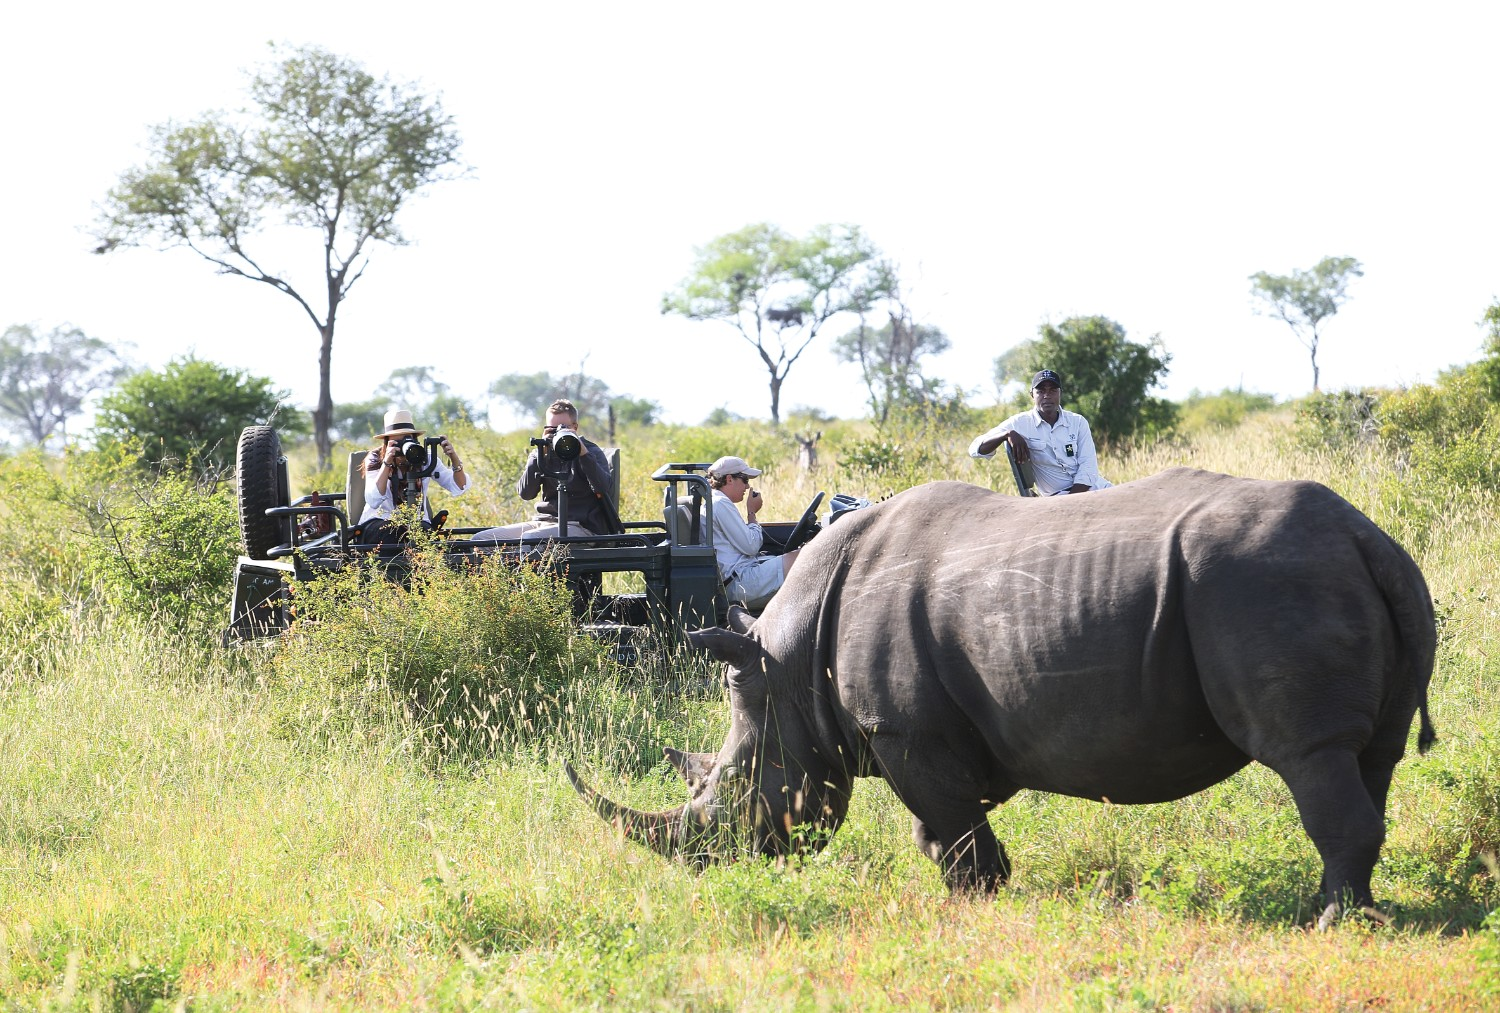 Londolozi photographic safari vehicle with rhino